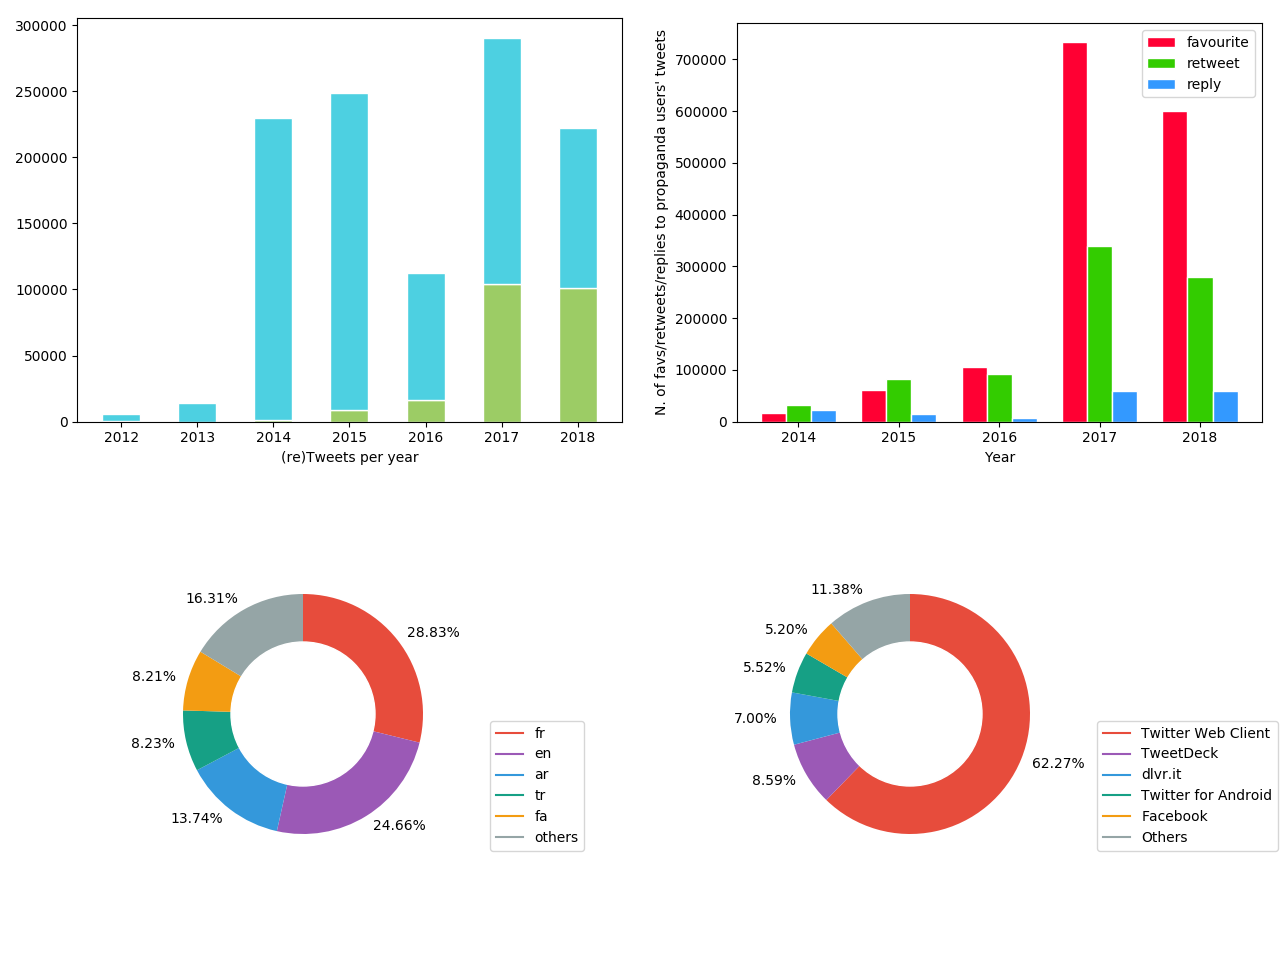 About Iran and IRA Twitter datasets (for fun) - Part I